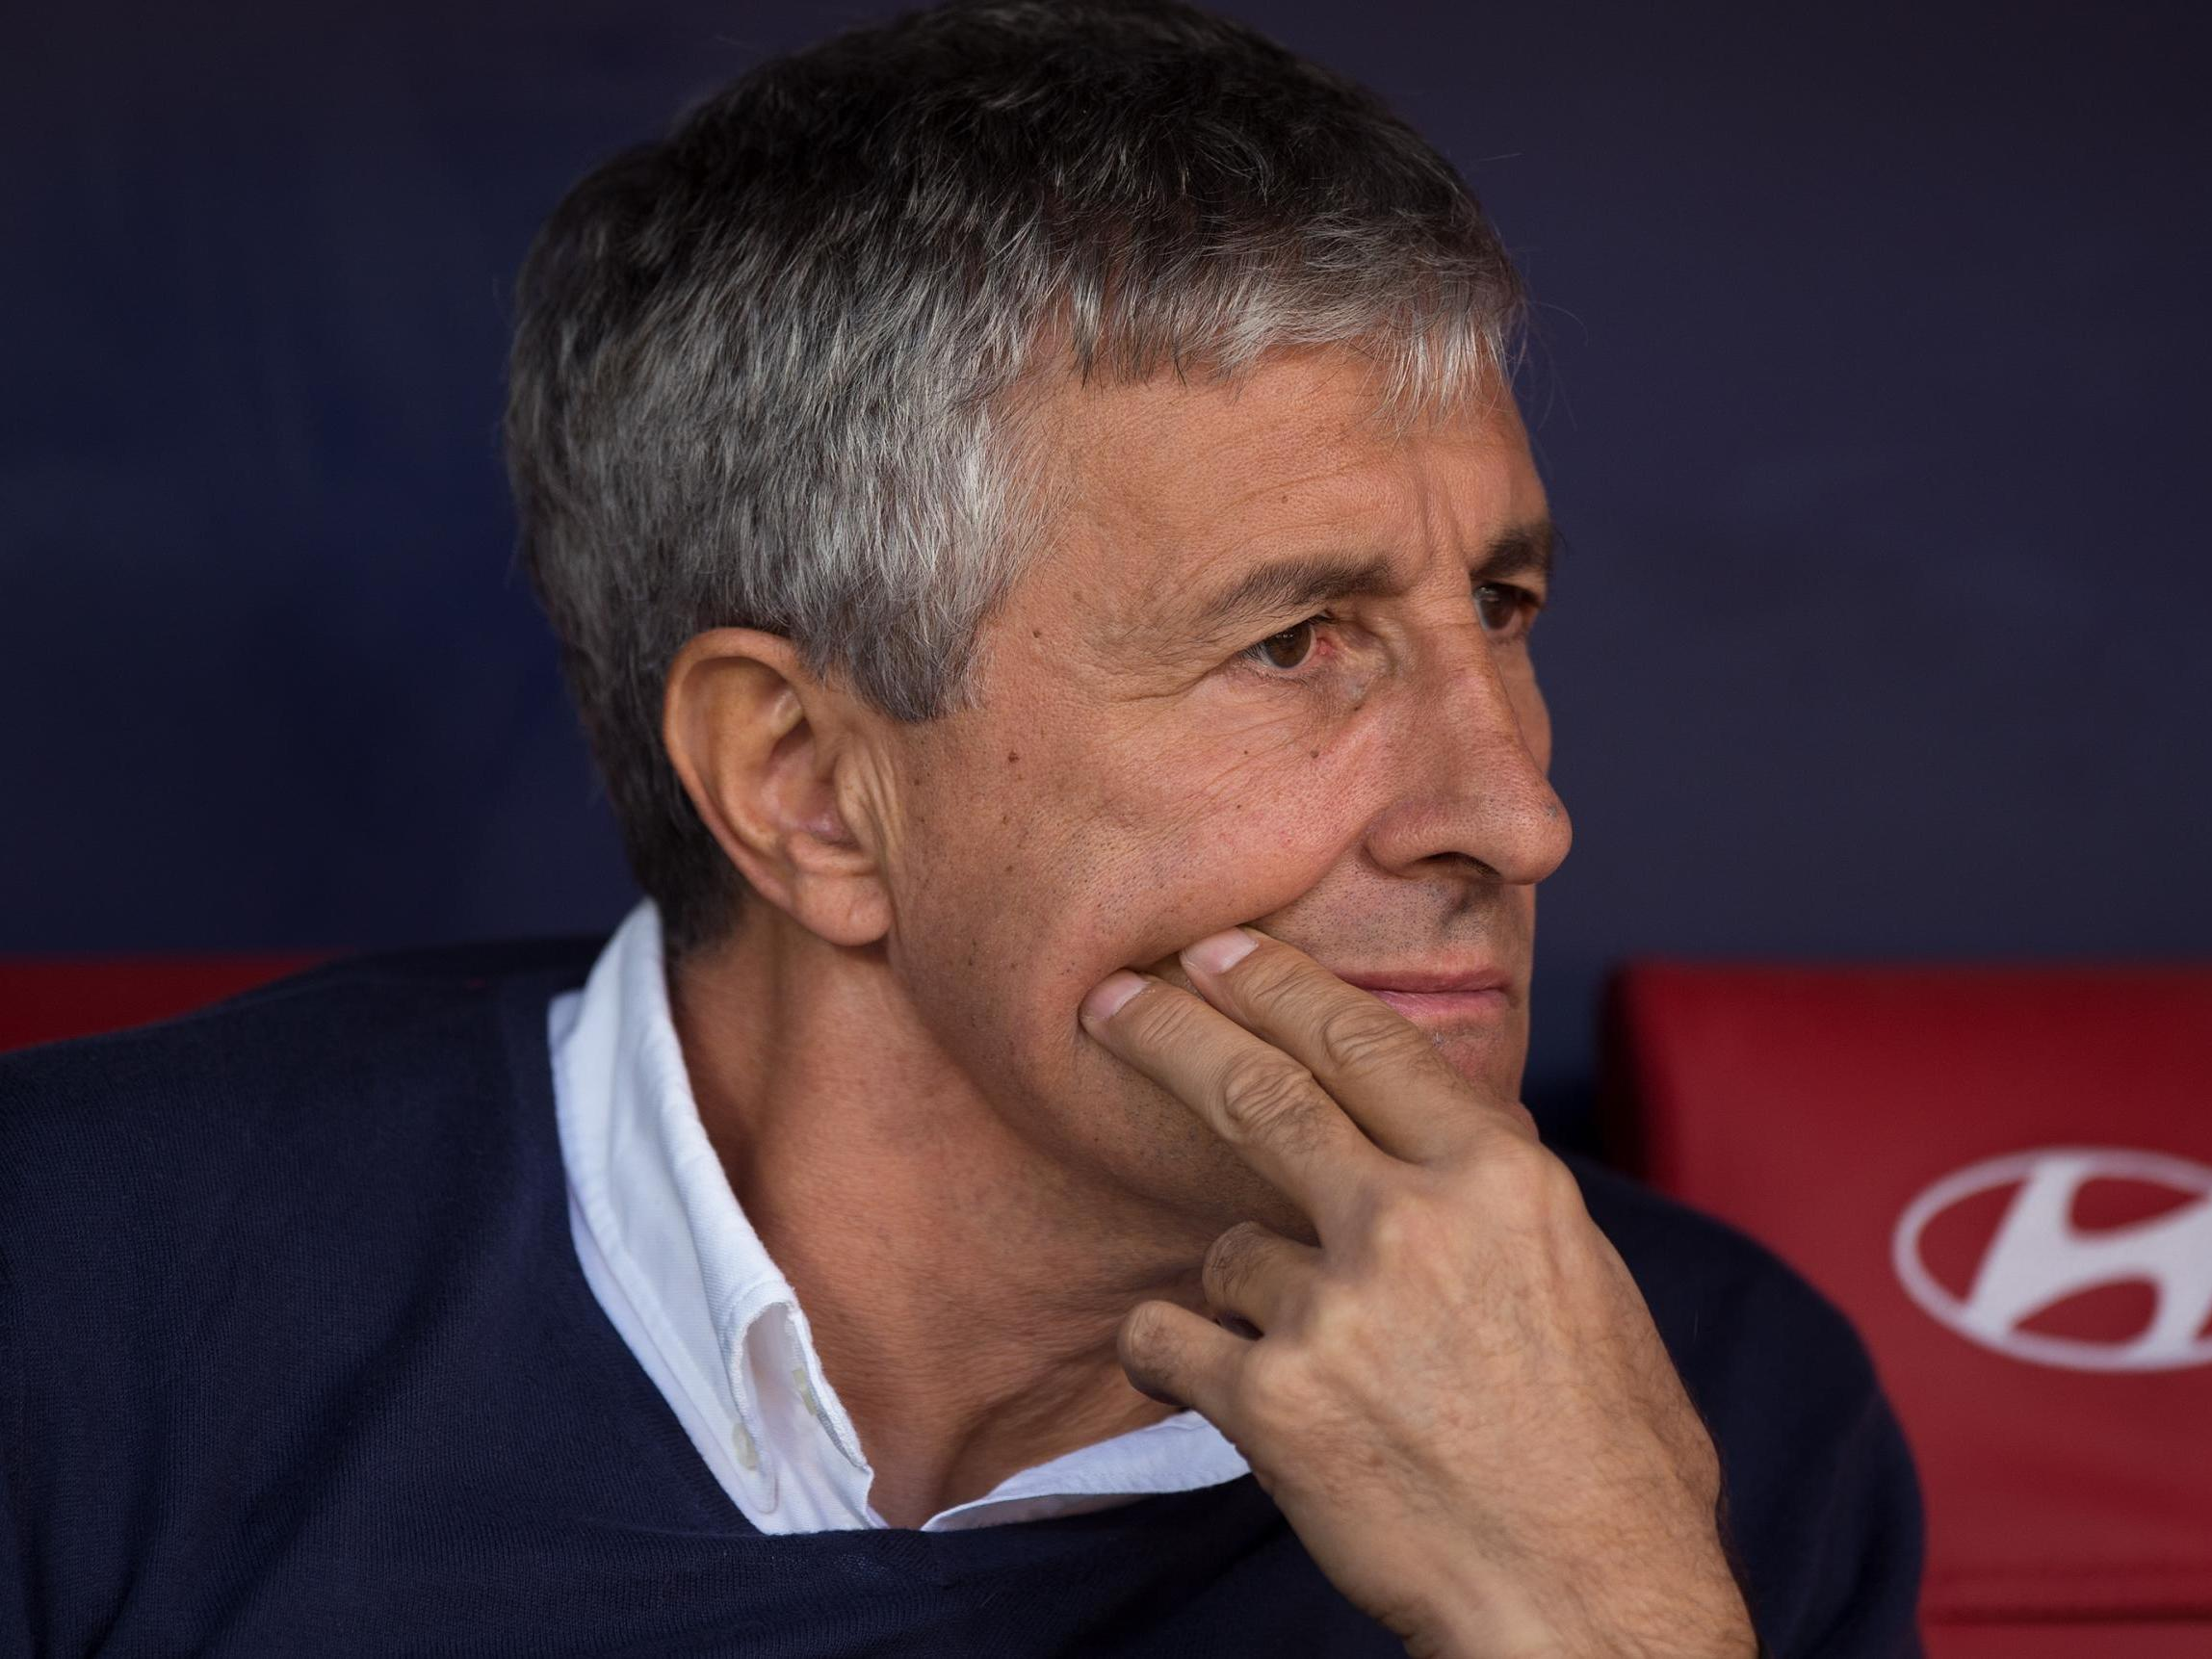 Barcelona sack Ernesto Valverde and appoint former Real Betis manager Quique Setien as replacement